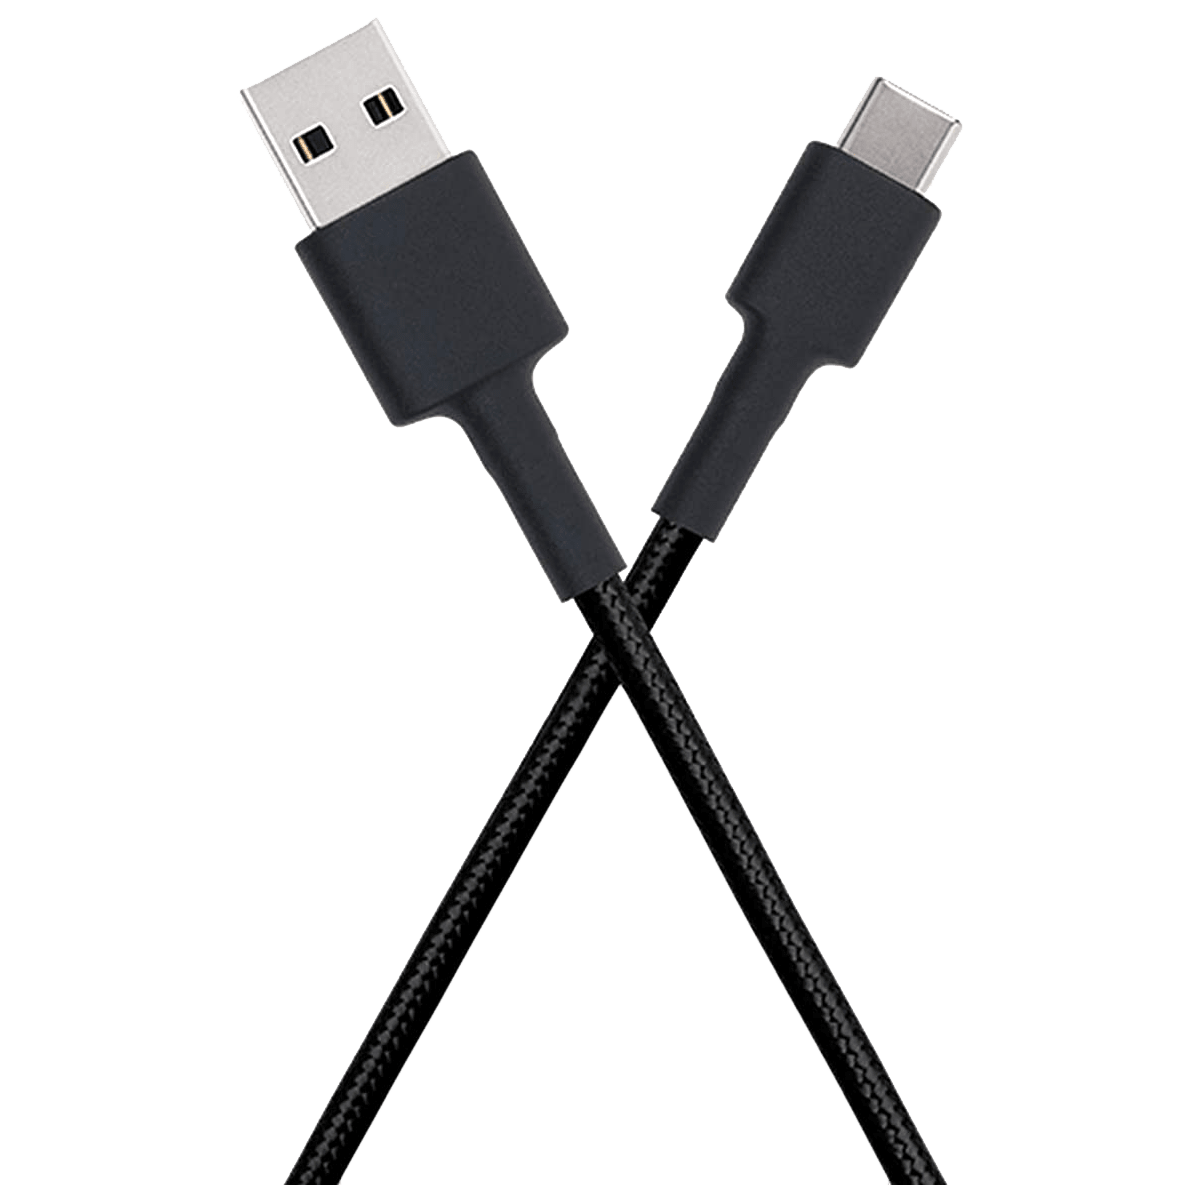 Xiaomi Mi Braided DuPont Kevlar Fiber 1 Meter USB 2.0 (Type-A) to USB 3.0 (Type-C) Power/Charging USB Cable (Fast Charging Compatible, SJV4160IN, Black)